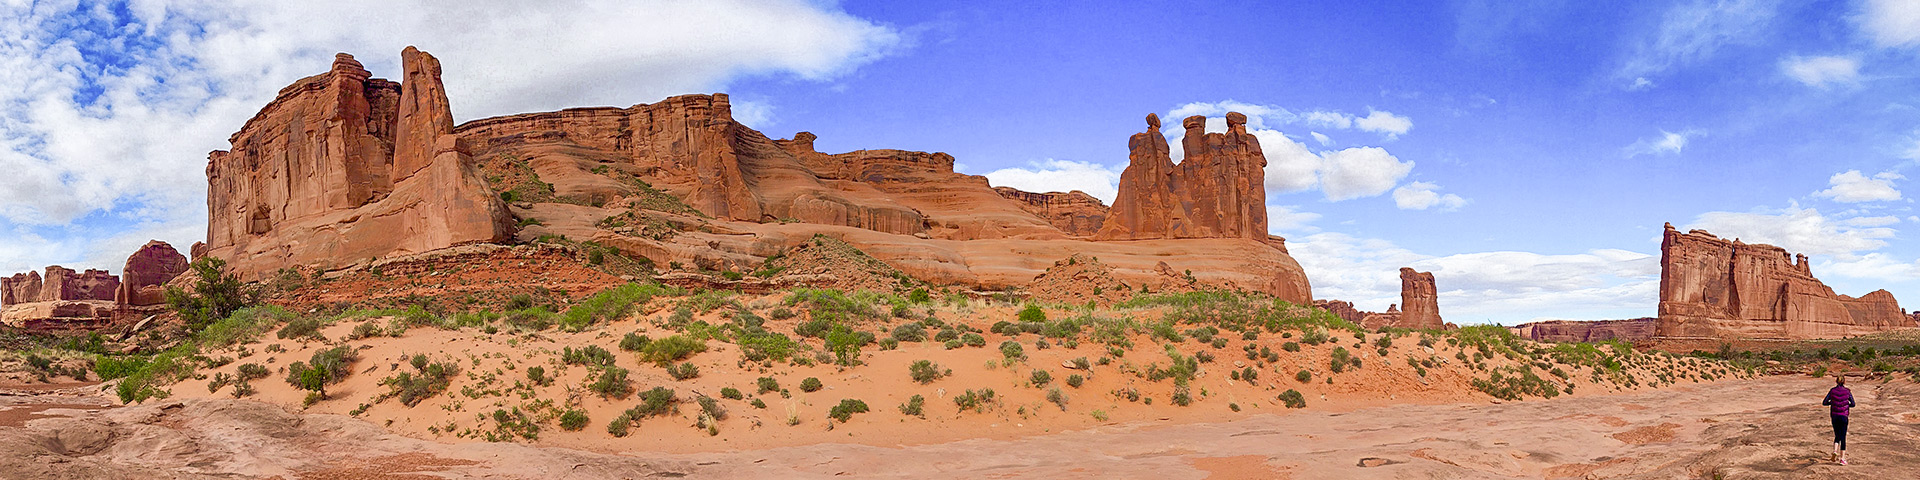 Park Avenue hike in Arches National Park, Moab